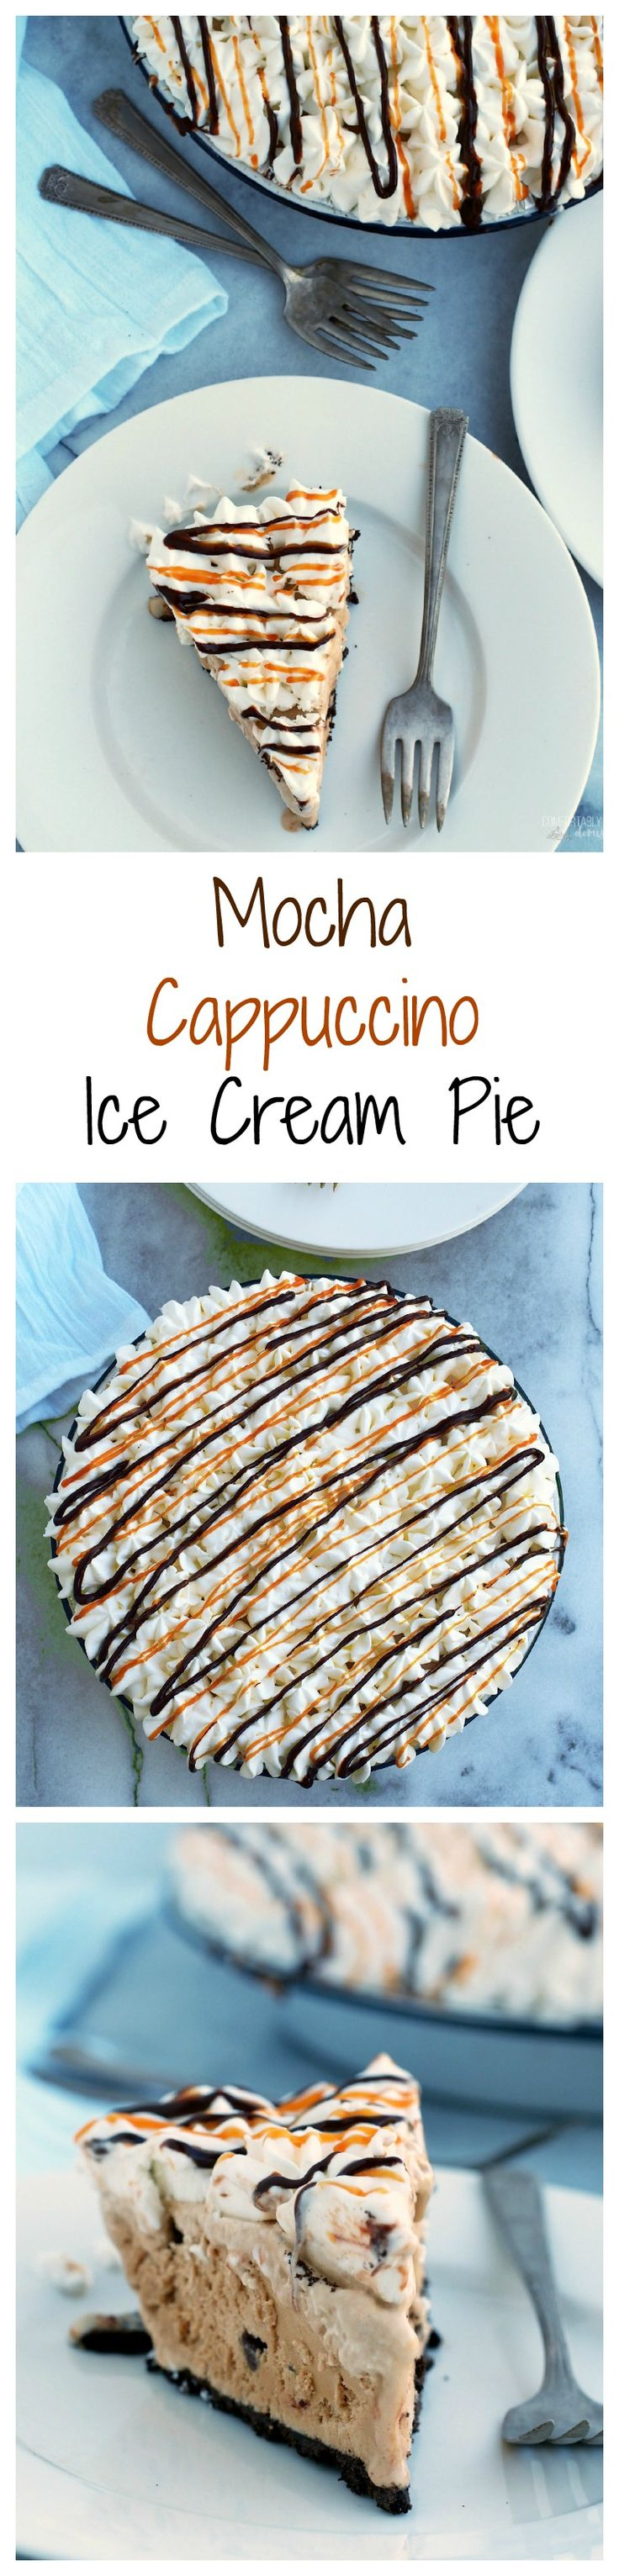 No-Bake-Mocha-Cappuccino-Ice-Cream-Pie is coffee ice cream, chocolate chips, whipped cream, drizzles of caramel and hot fudge, nestled in an Oreo cookie crust. via @comfortdomestic | www.ComfortablyDomestic.com